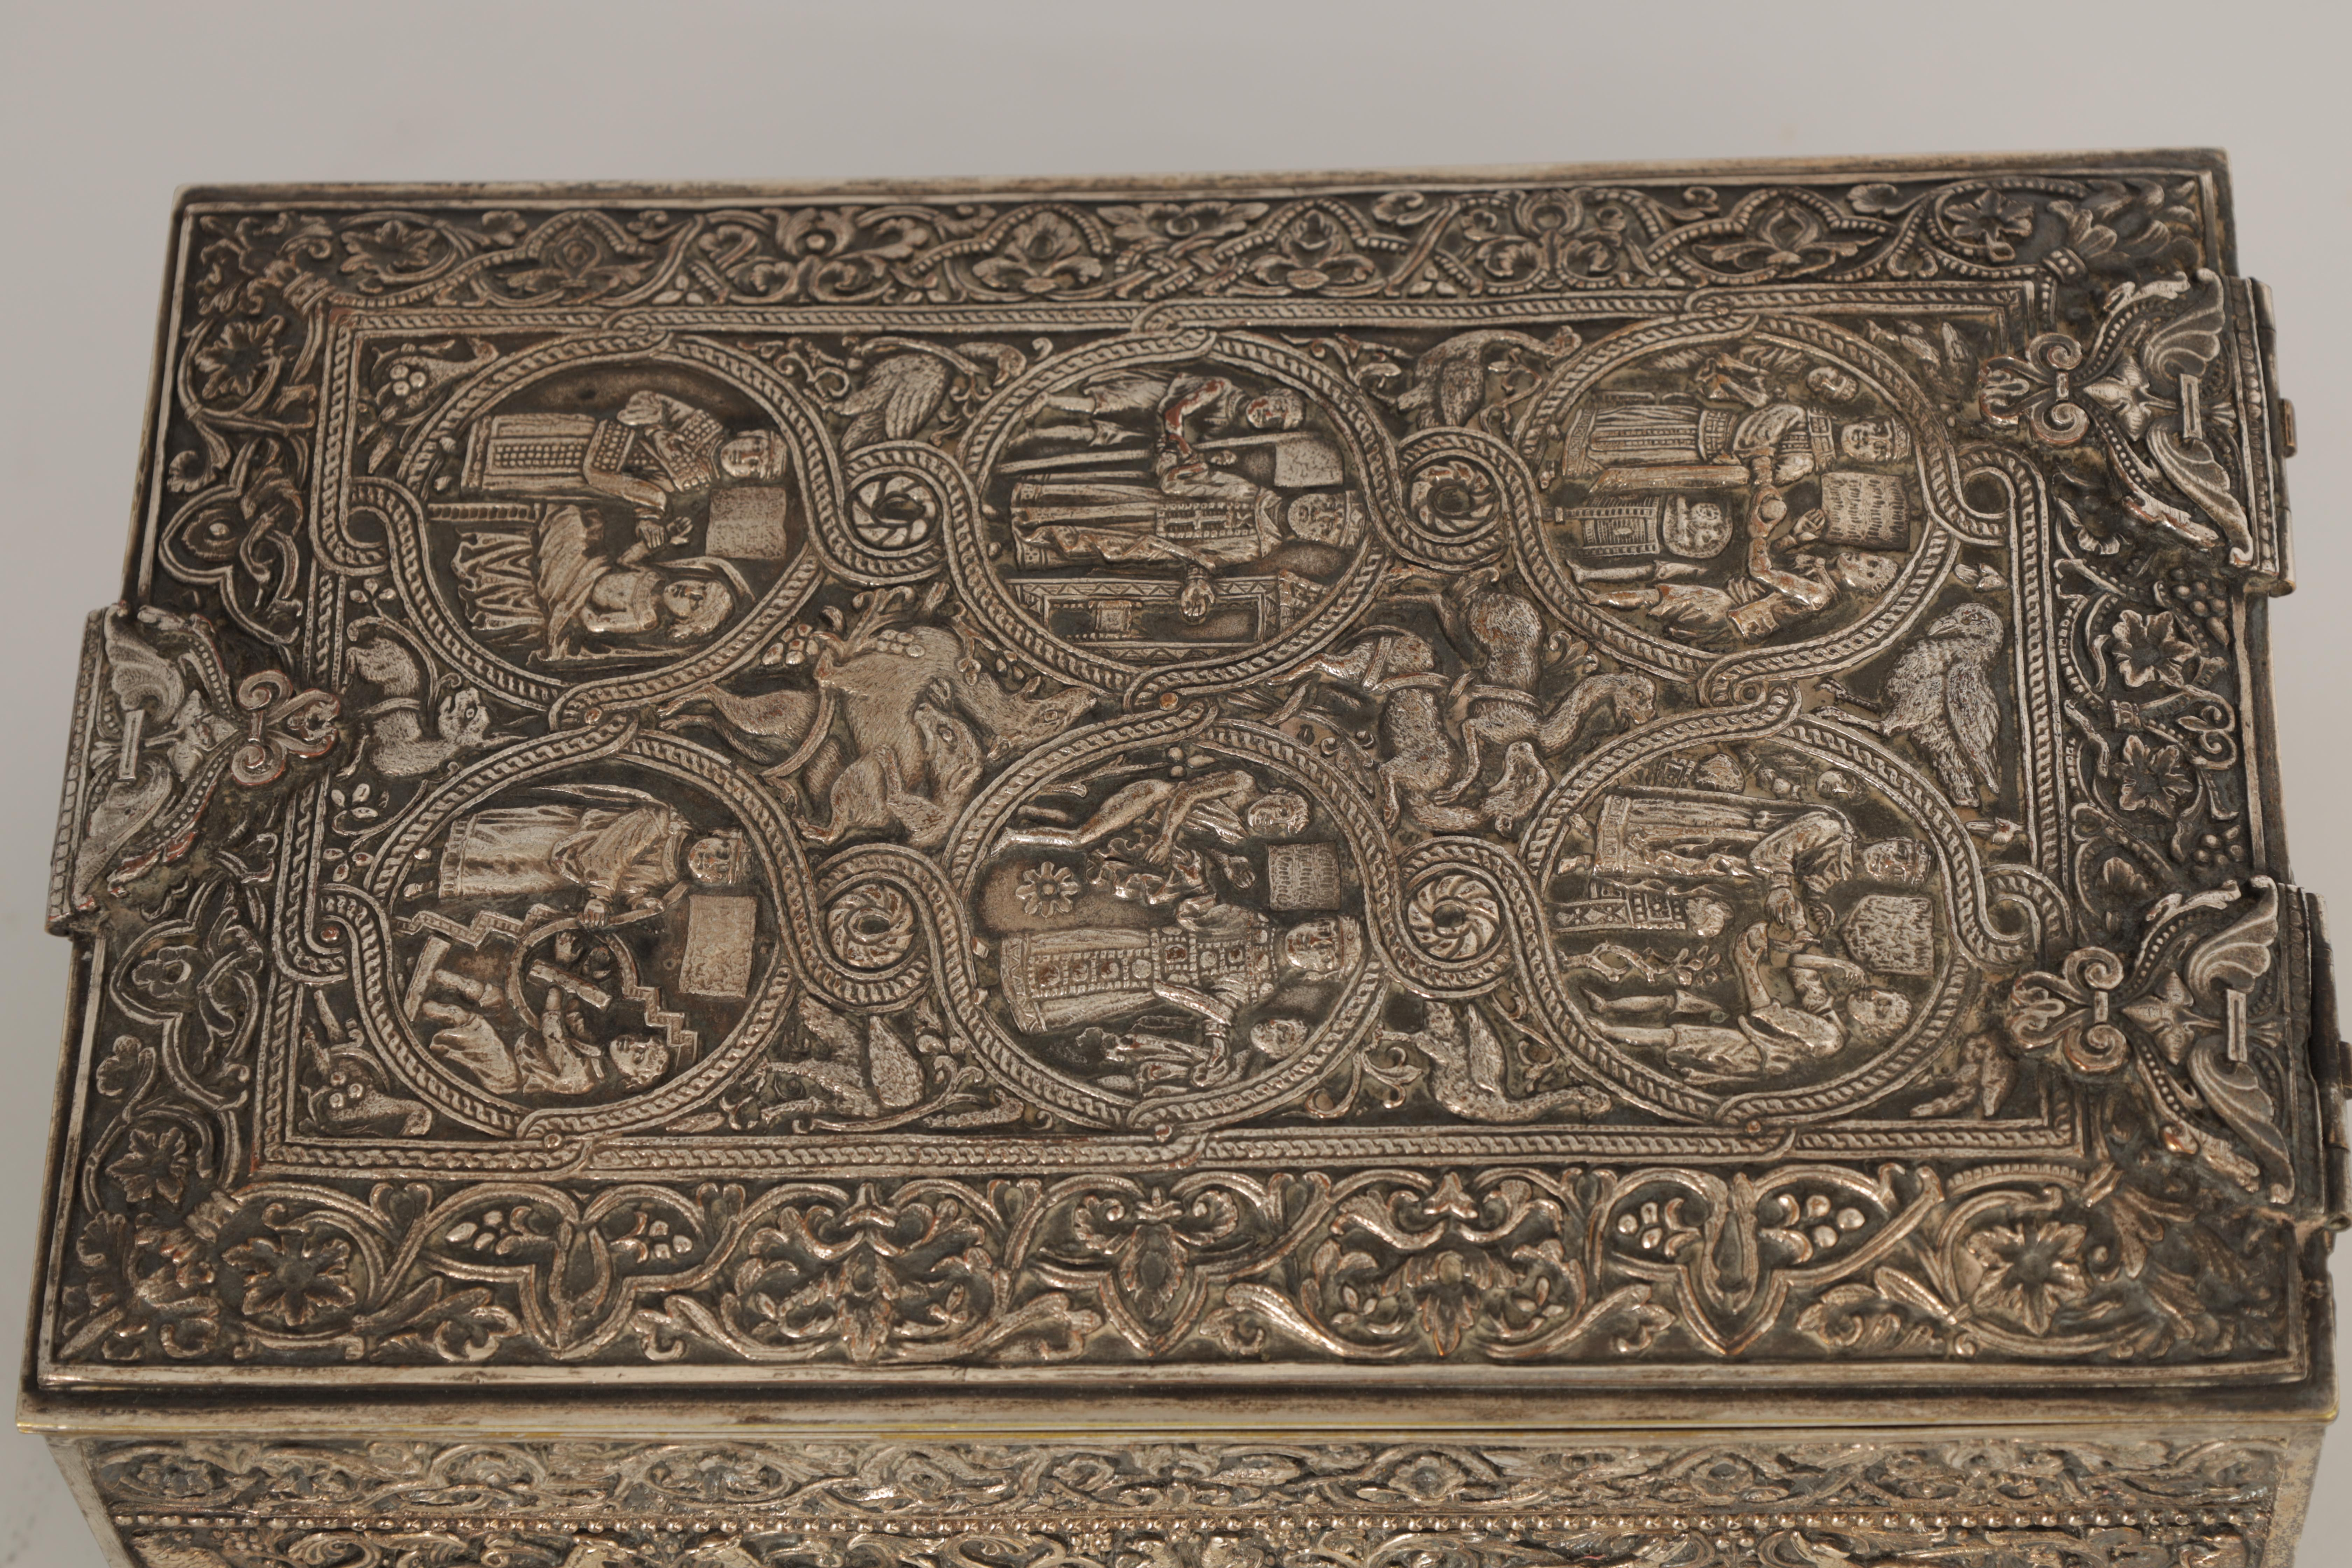 A 19TH CENTURY SILVERED BRONZE JEWELLERY CASKET the lid with intricate relief groups of birds, - Image 9 of 12